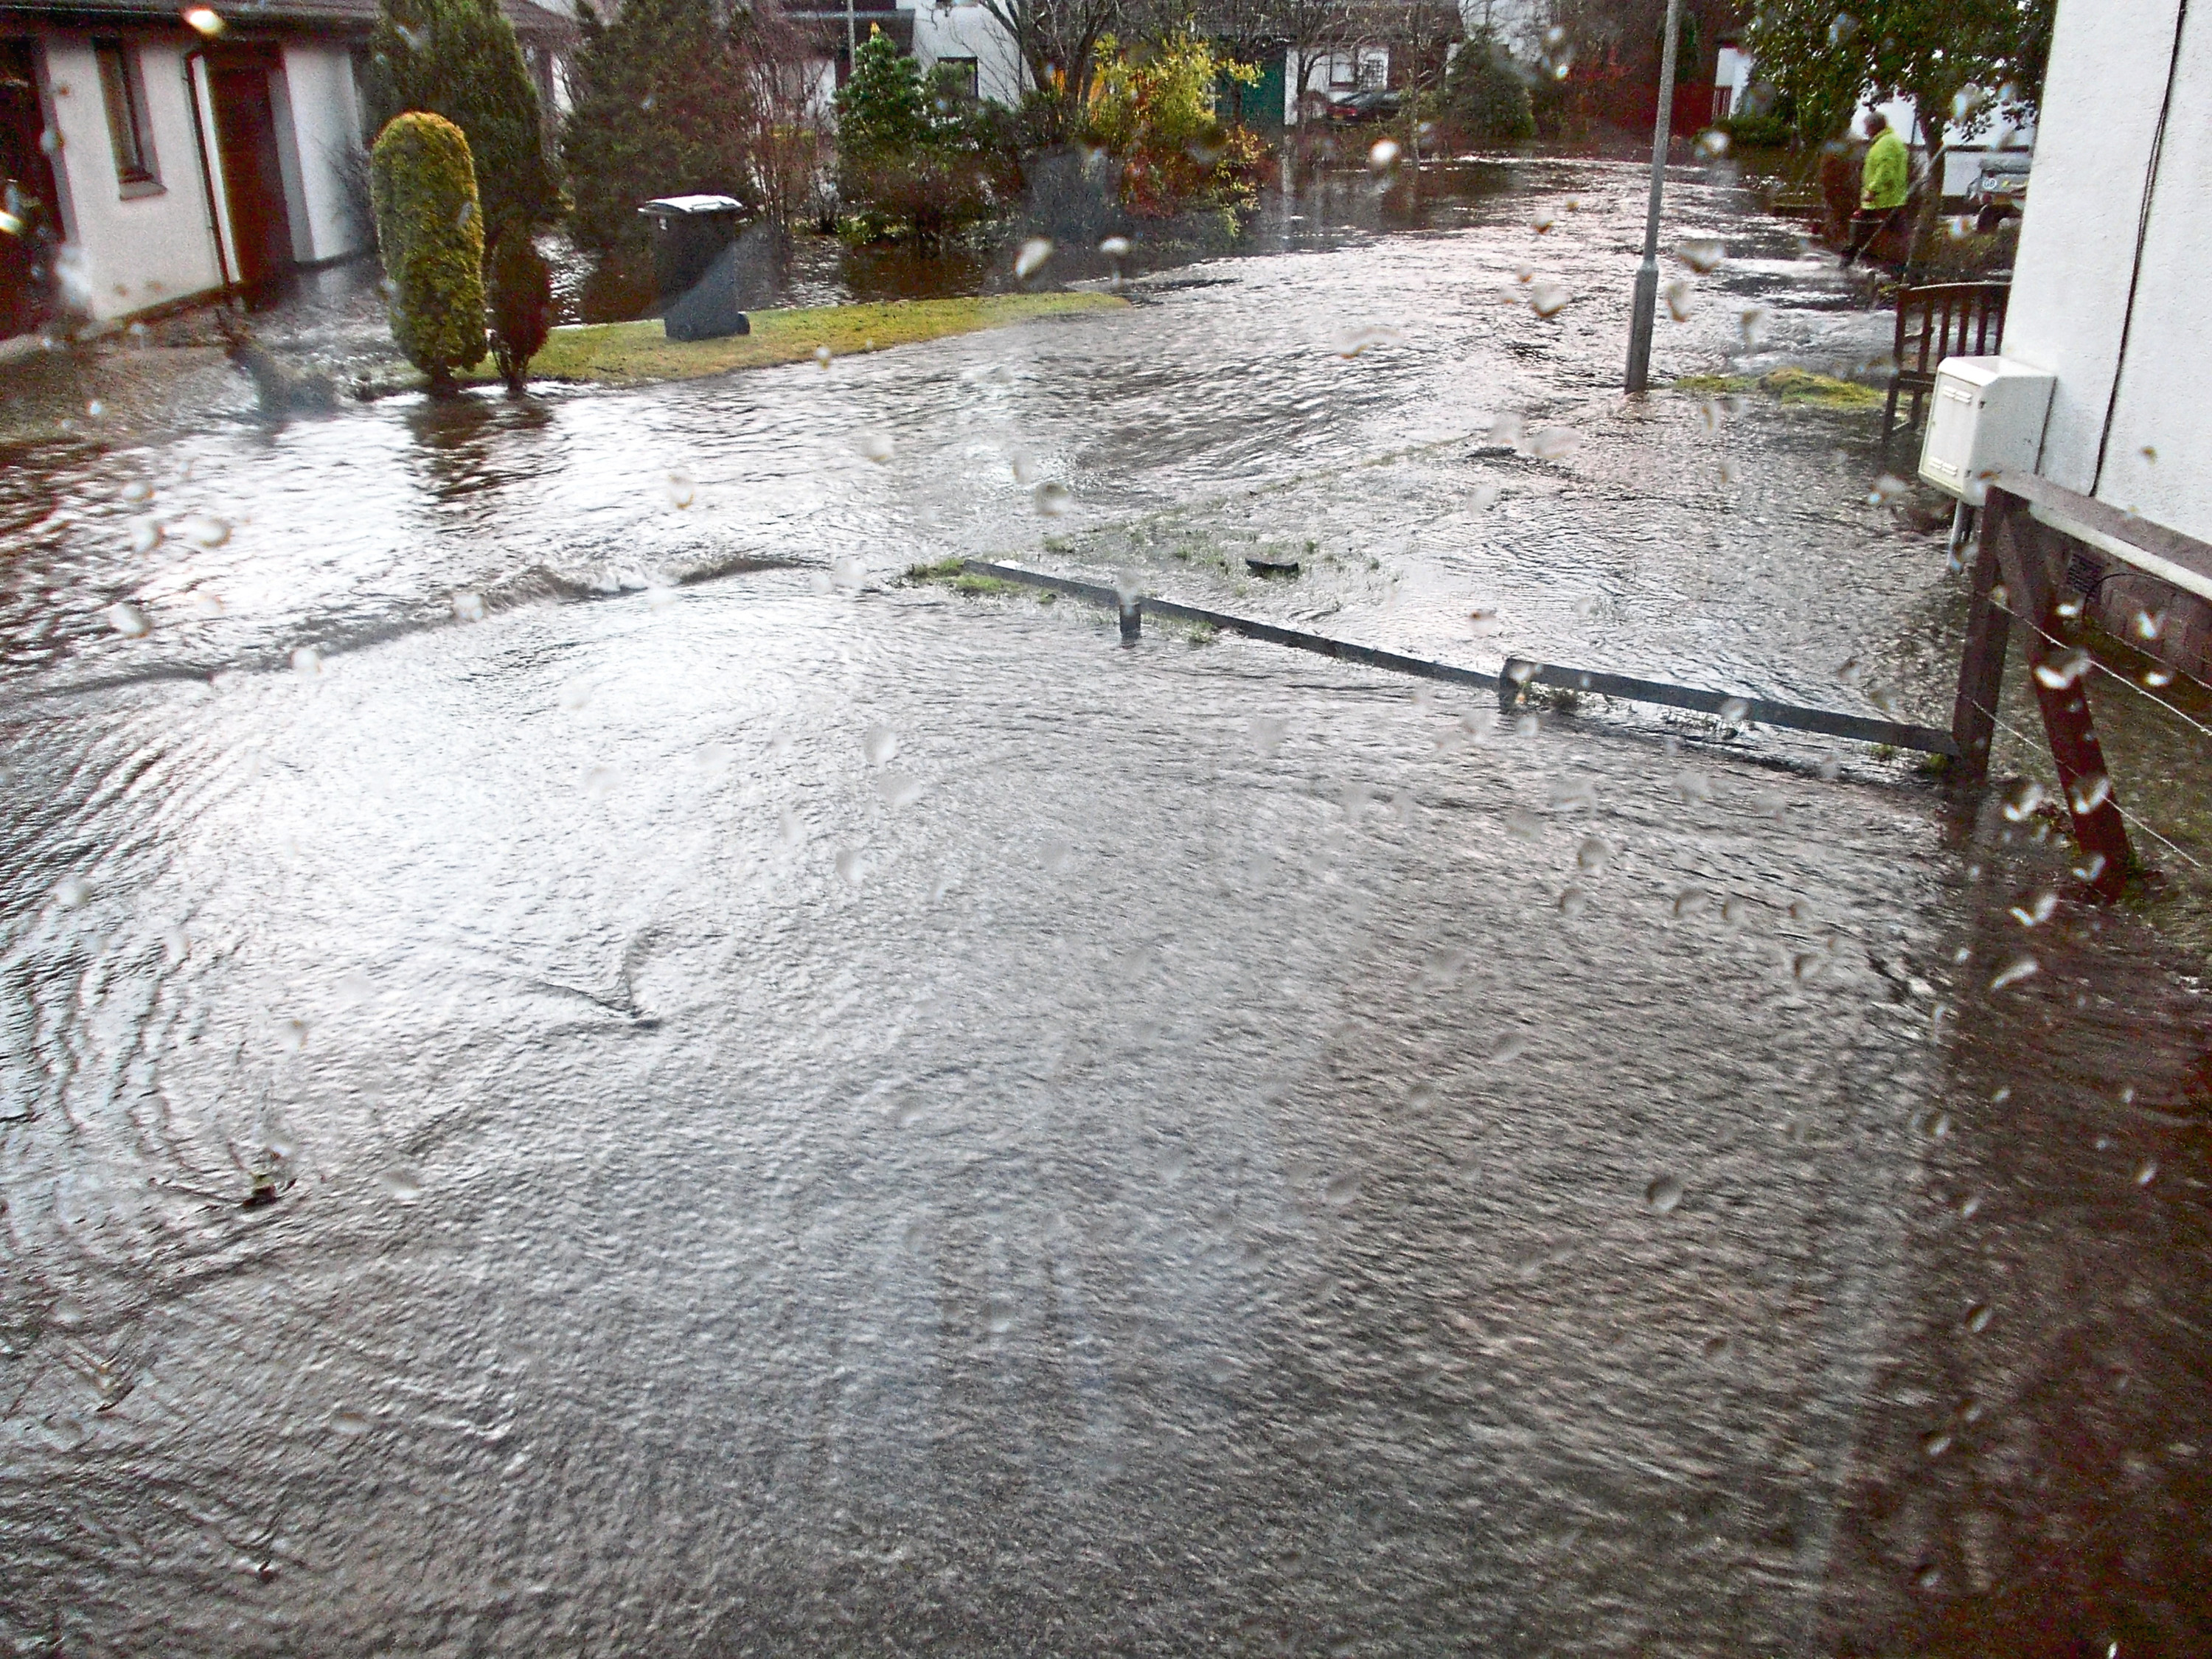 Peterculter was hit by flooding during Storm Frank